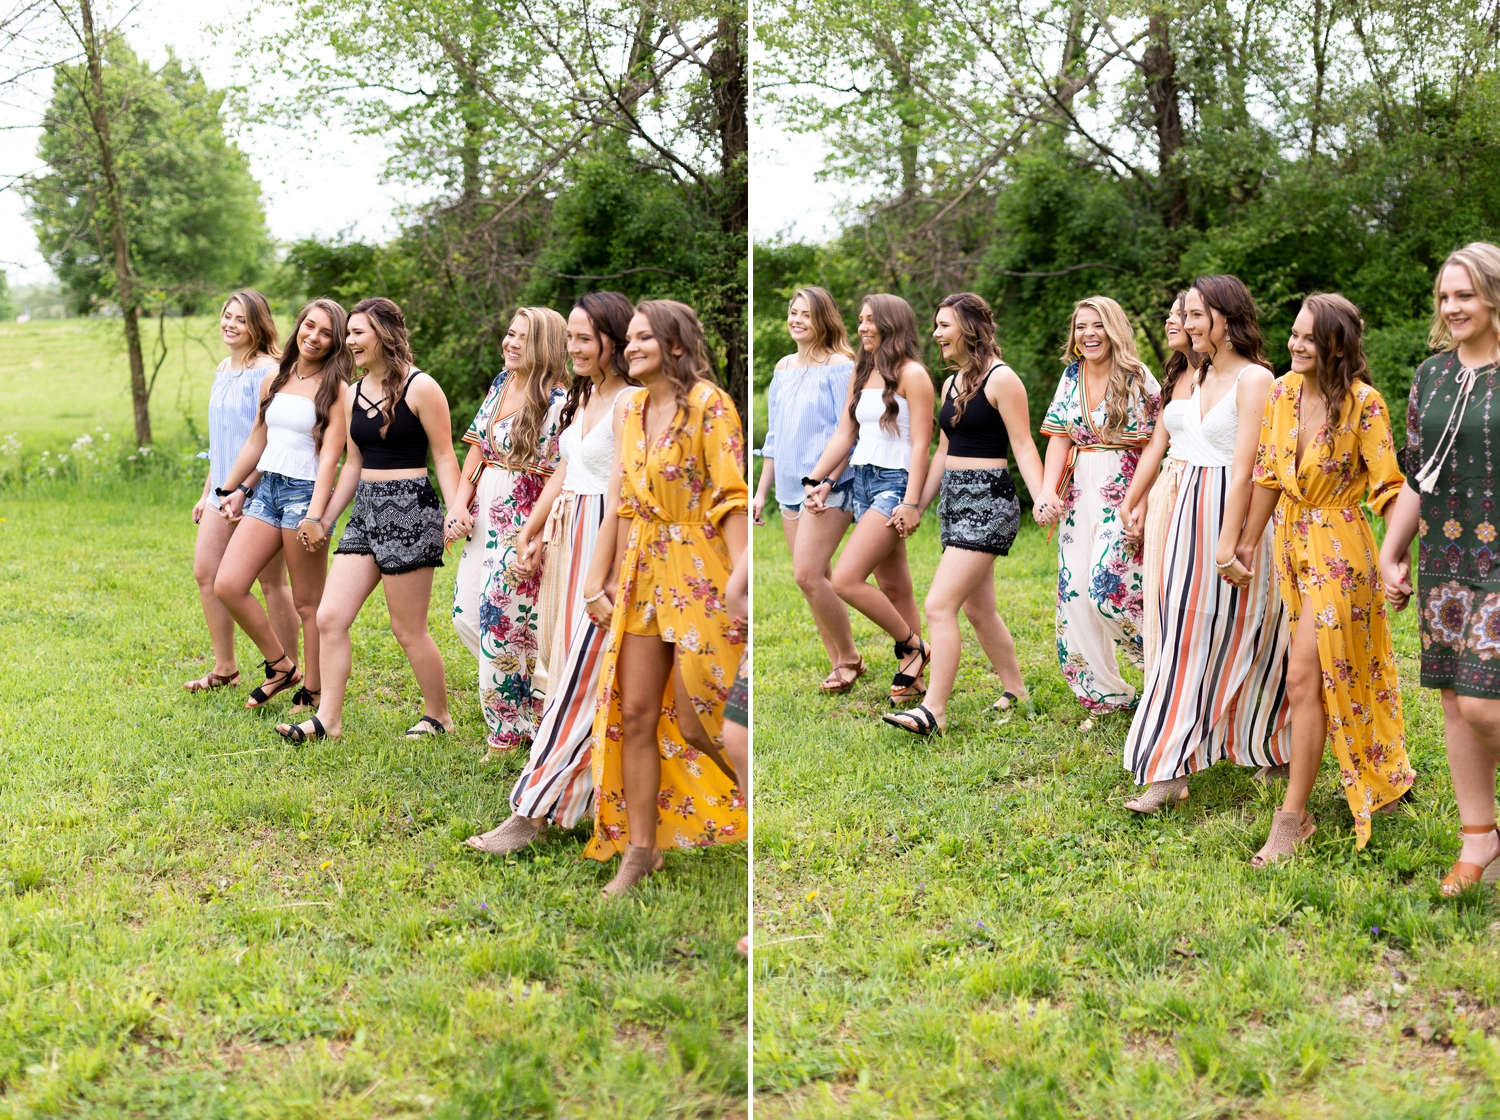 ohio senior rep program, senior reps, coachella vibes, boho outfit ideas, coachella outfits, 2020 seniors, oak hill high school, point pleasant high school, gallia academy high school, ohio portrait photographer, southern ohio, ohio senior photographer, columbus portrait photographer, ohio senior photos, ohio portrait photos, oak hill high school senior, point pleasant high school senior, gallia academy senior, wellston high school senior, jackson high school senior, outdoor senior photos